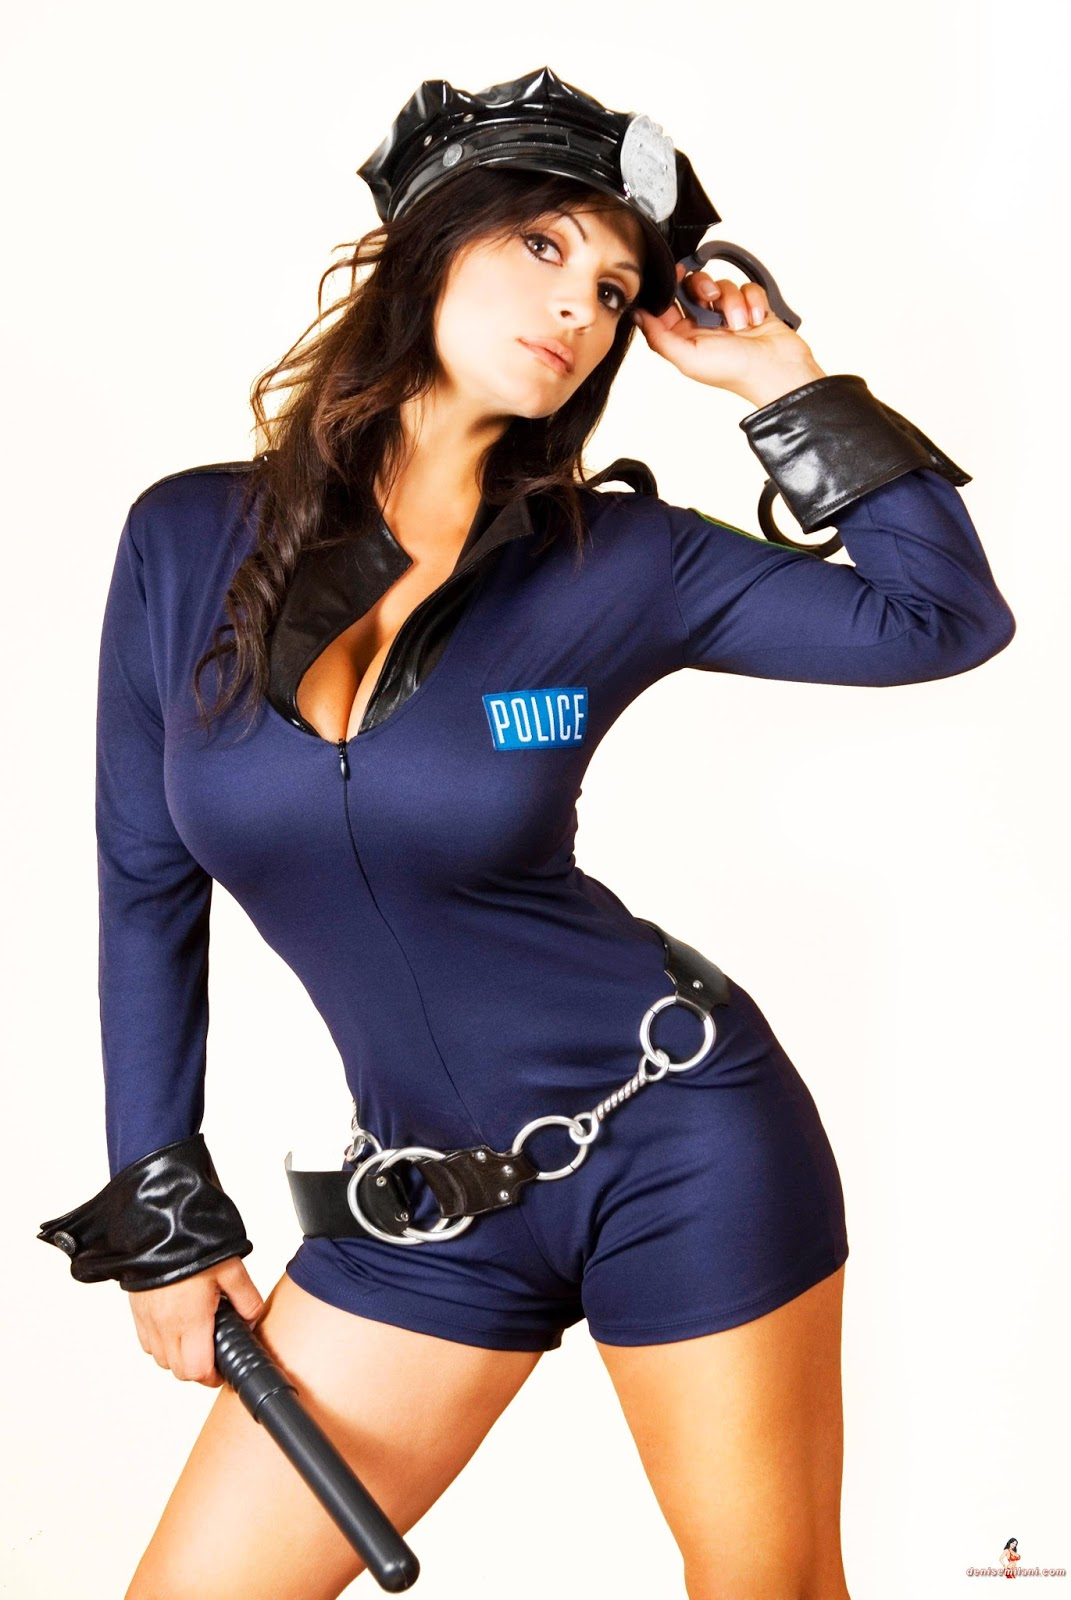 police-women-photo-nude